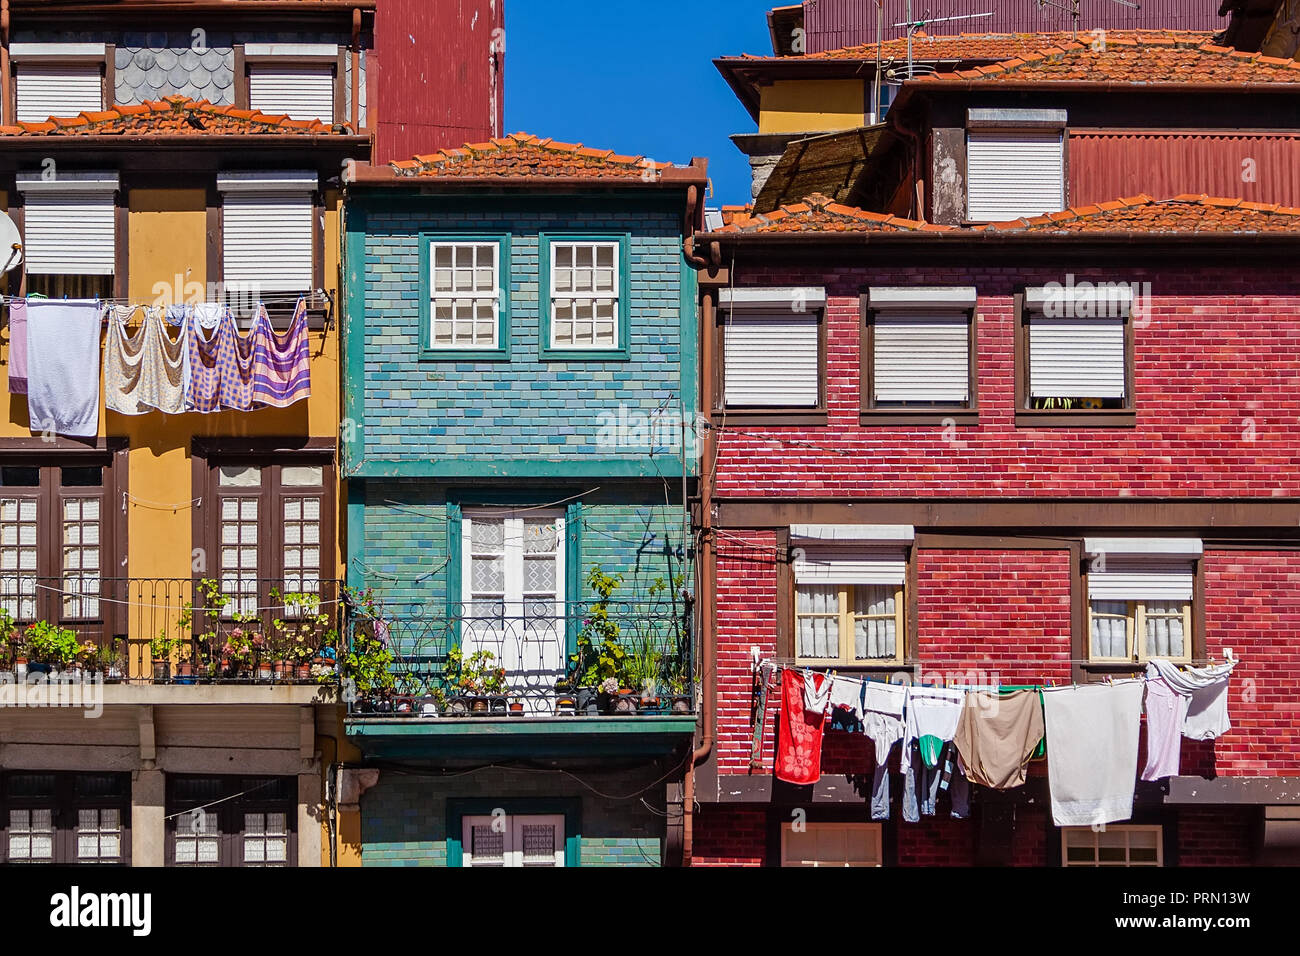 Ribeira District of Porto or Oporto city, Portugal. Typical colorful buildings, with clothes hanging in clothesline drying at sun and flower vases in  - Stock Image